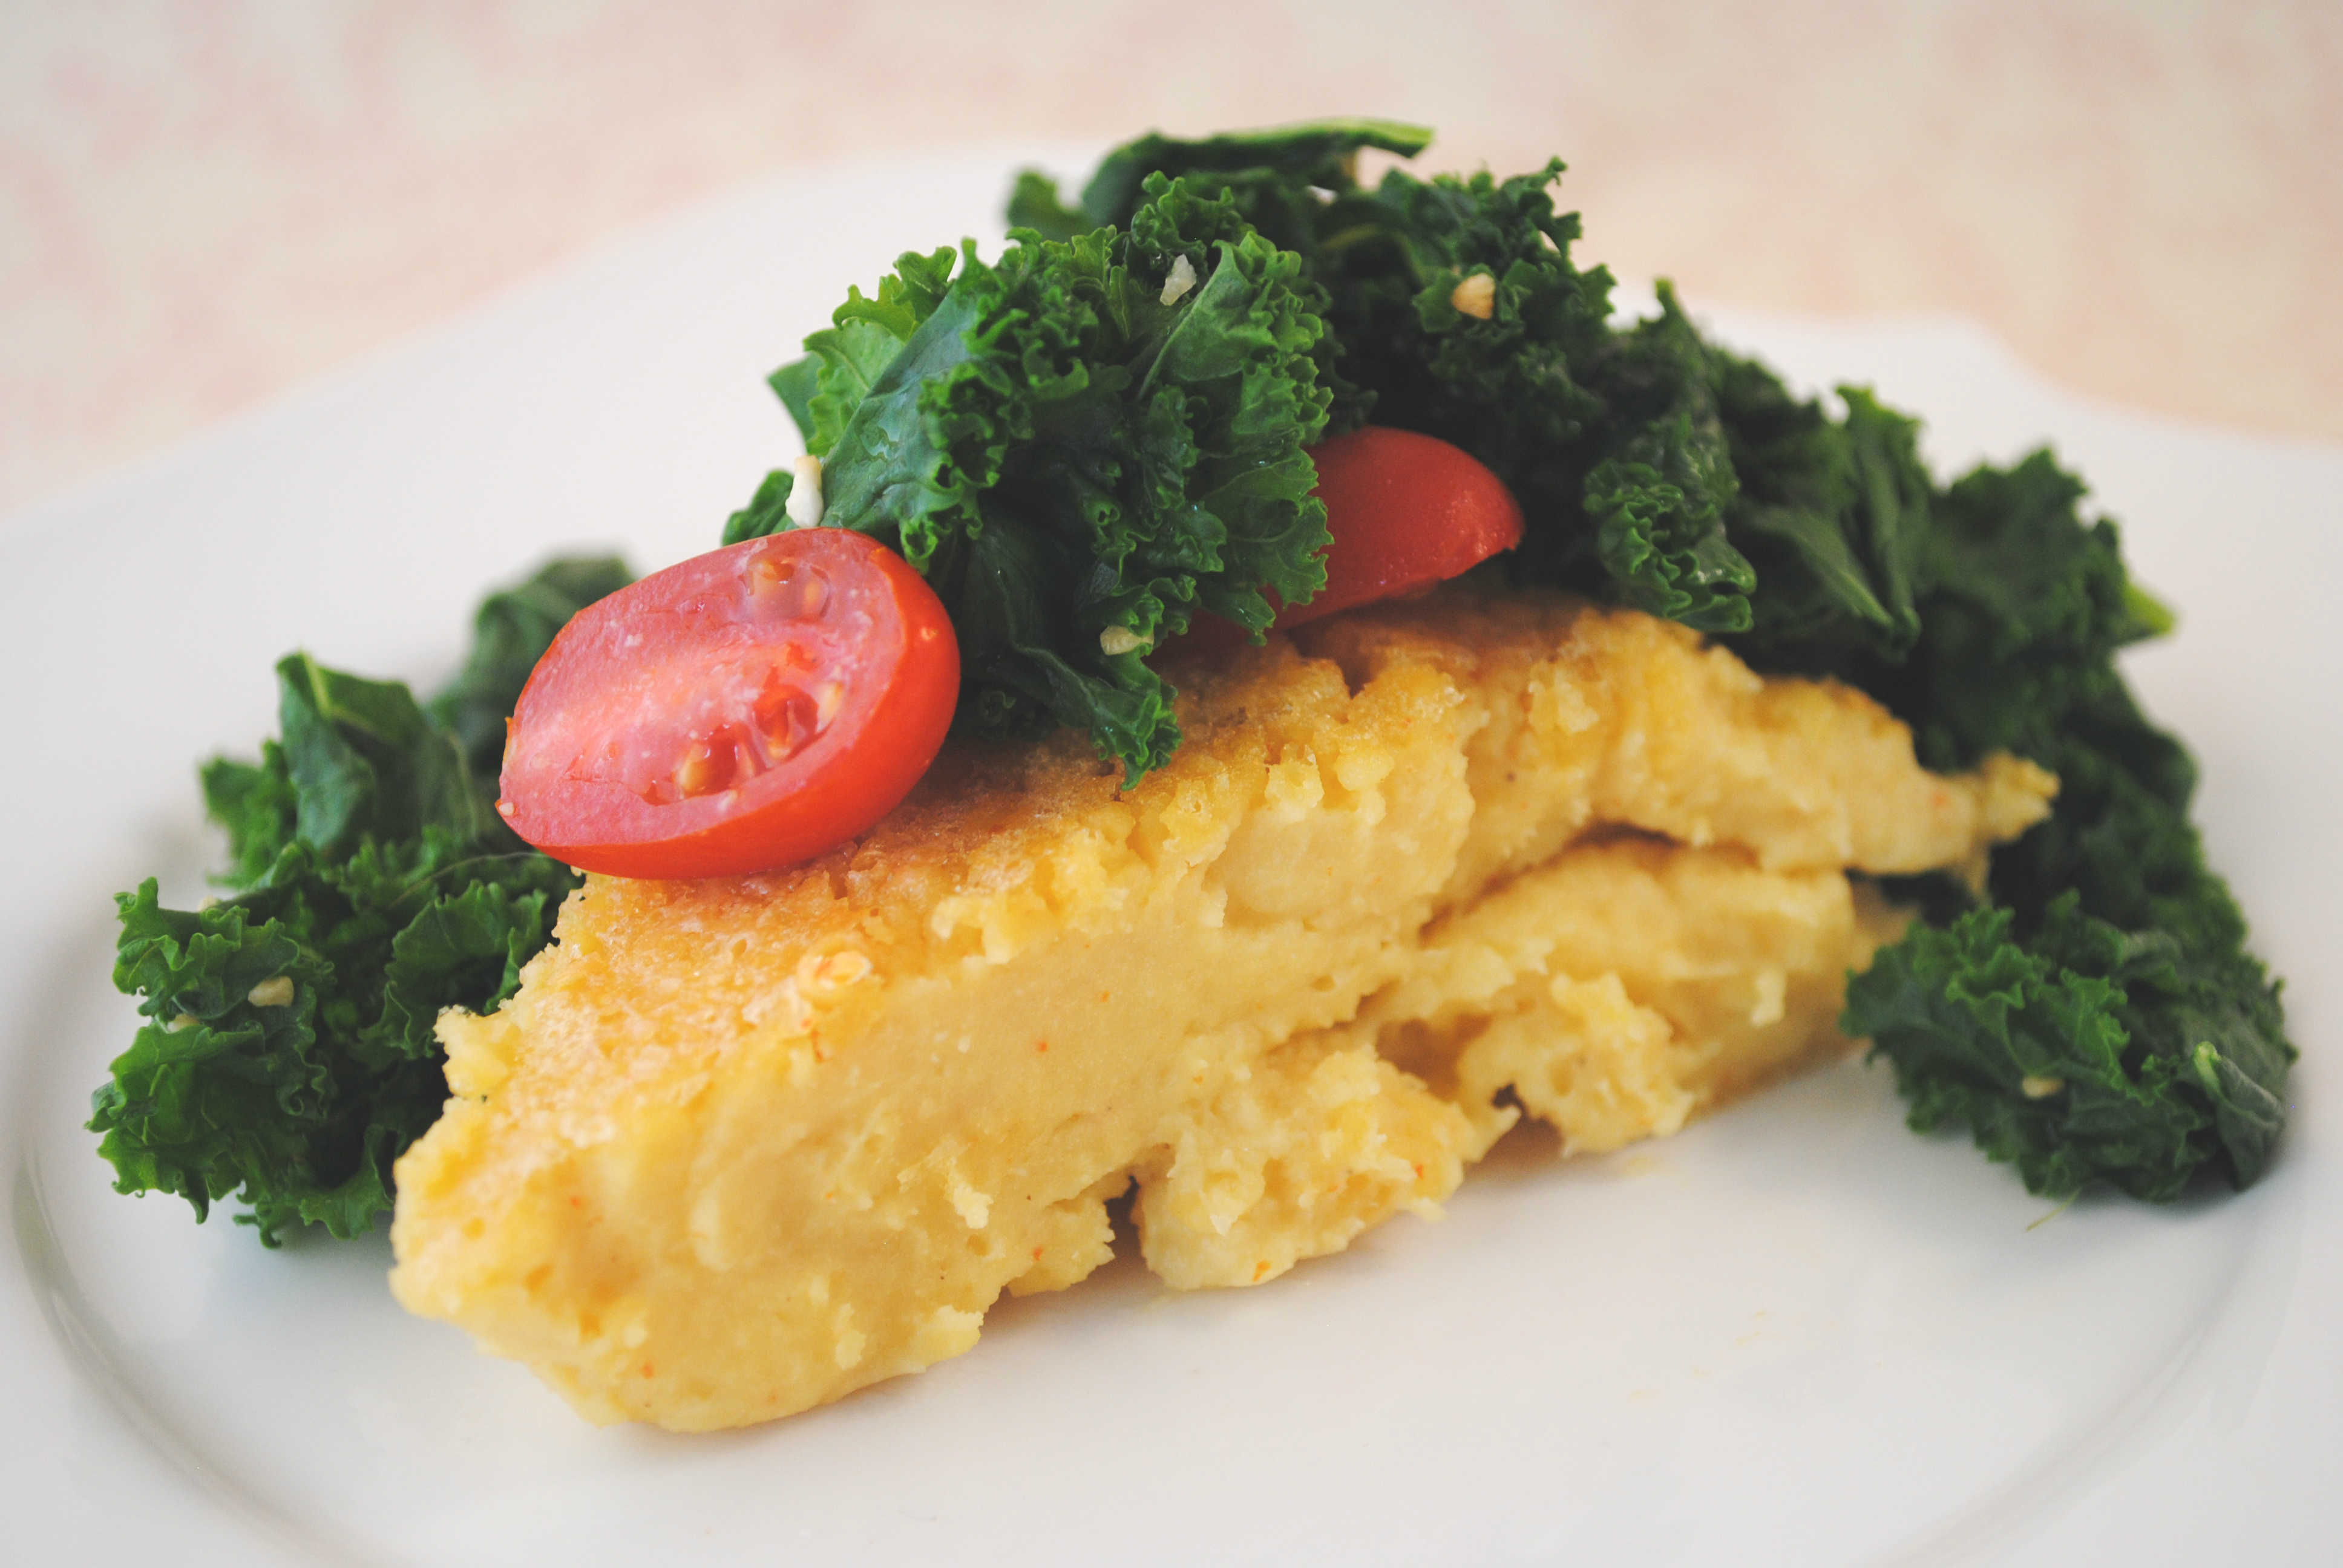 Vegan Chickpea Frittata with Kale and Tomatoes